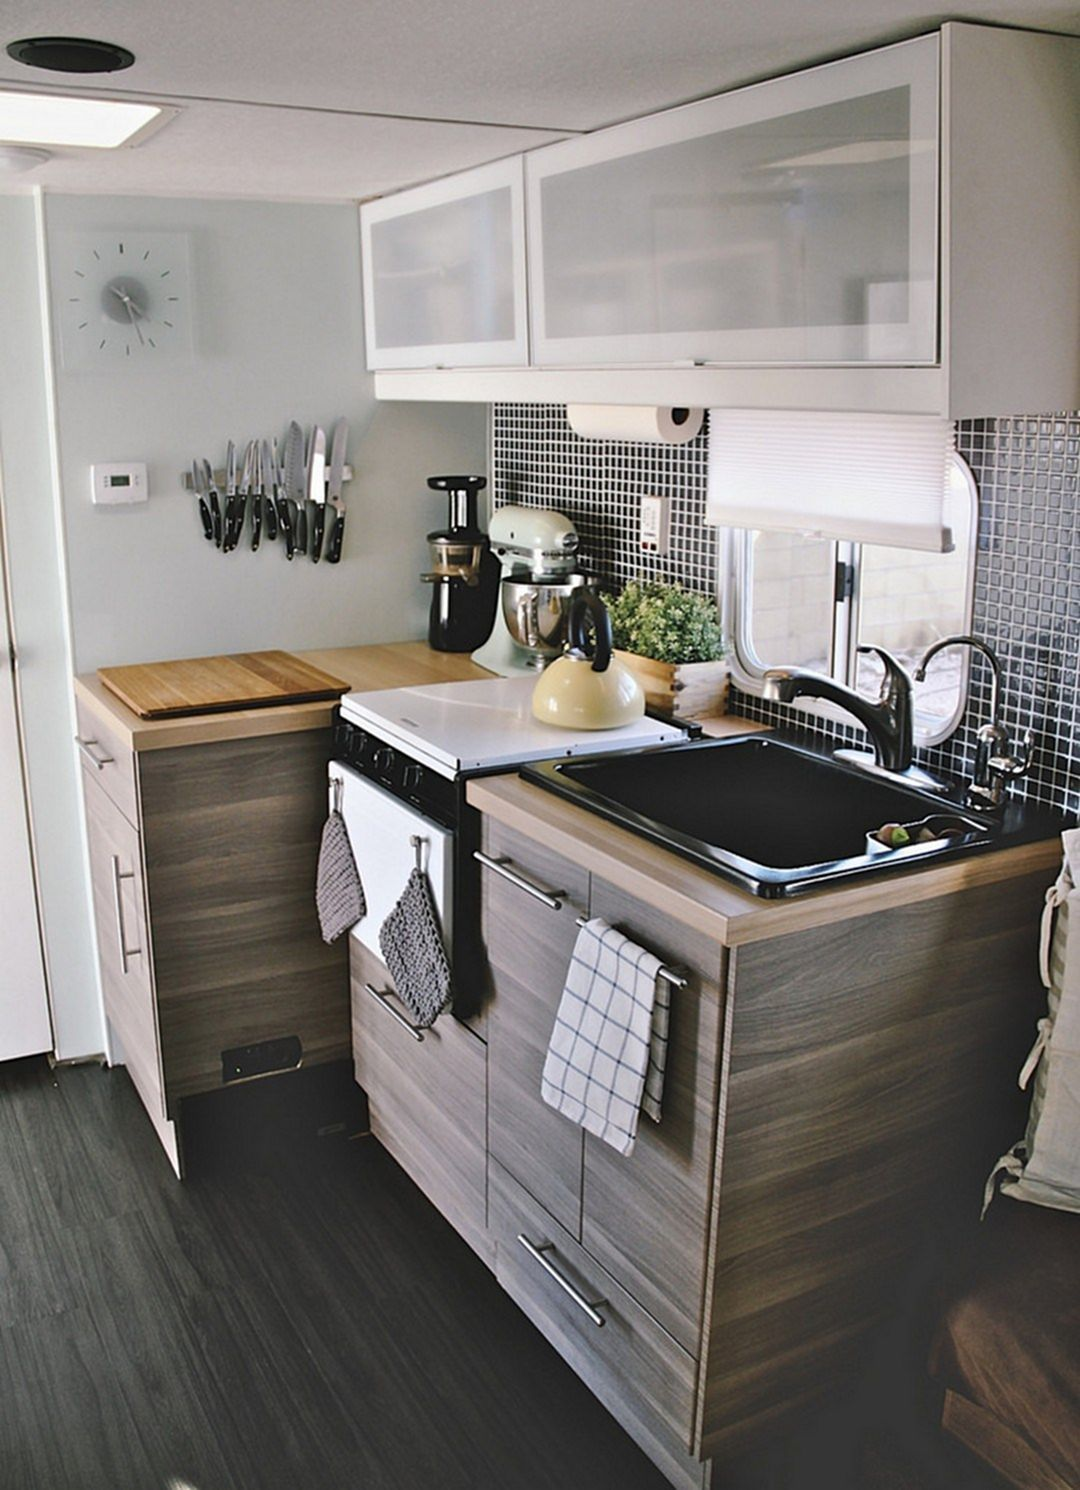 Incredible Vintage Travel Trailers Remodel Ideas 312 Goodsgn